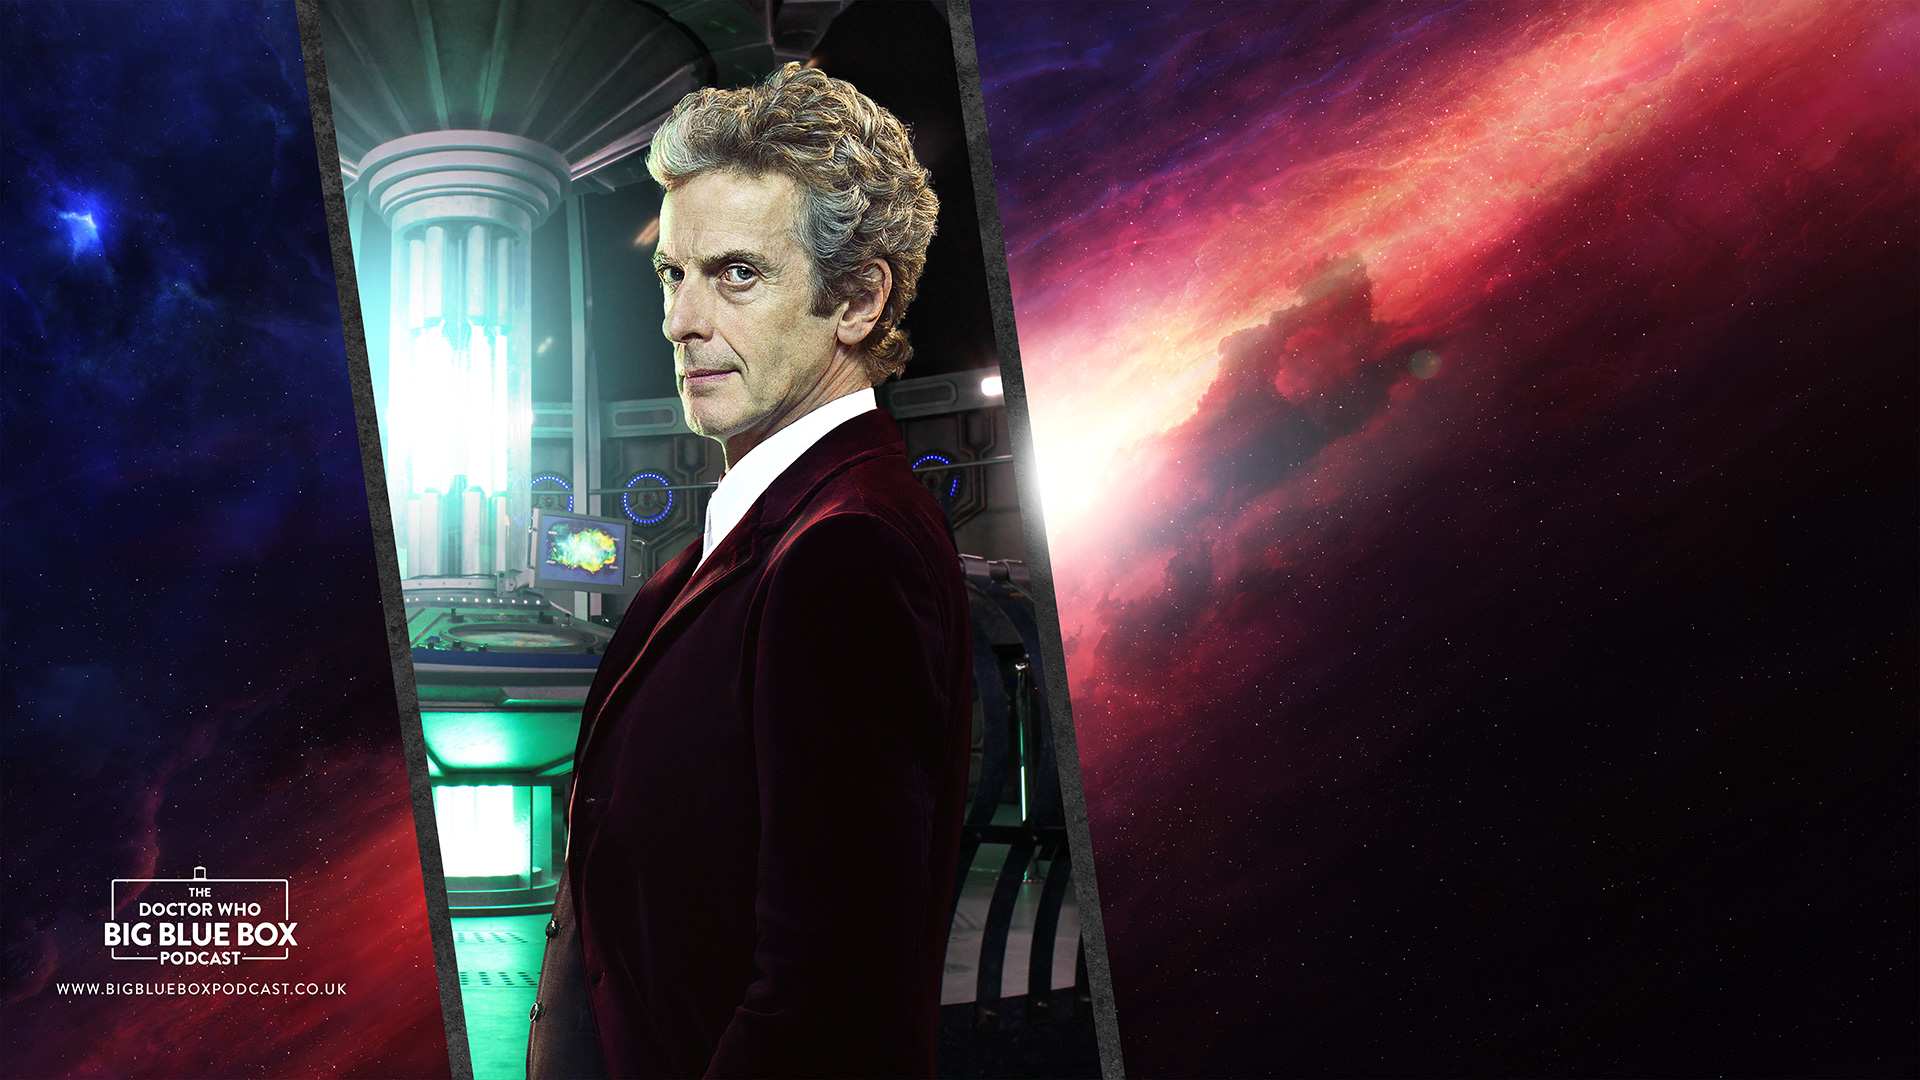 Big Blue Box Podcast Wallpaper Pack 1 Updated The Doctor Who